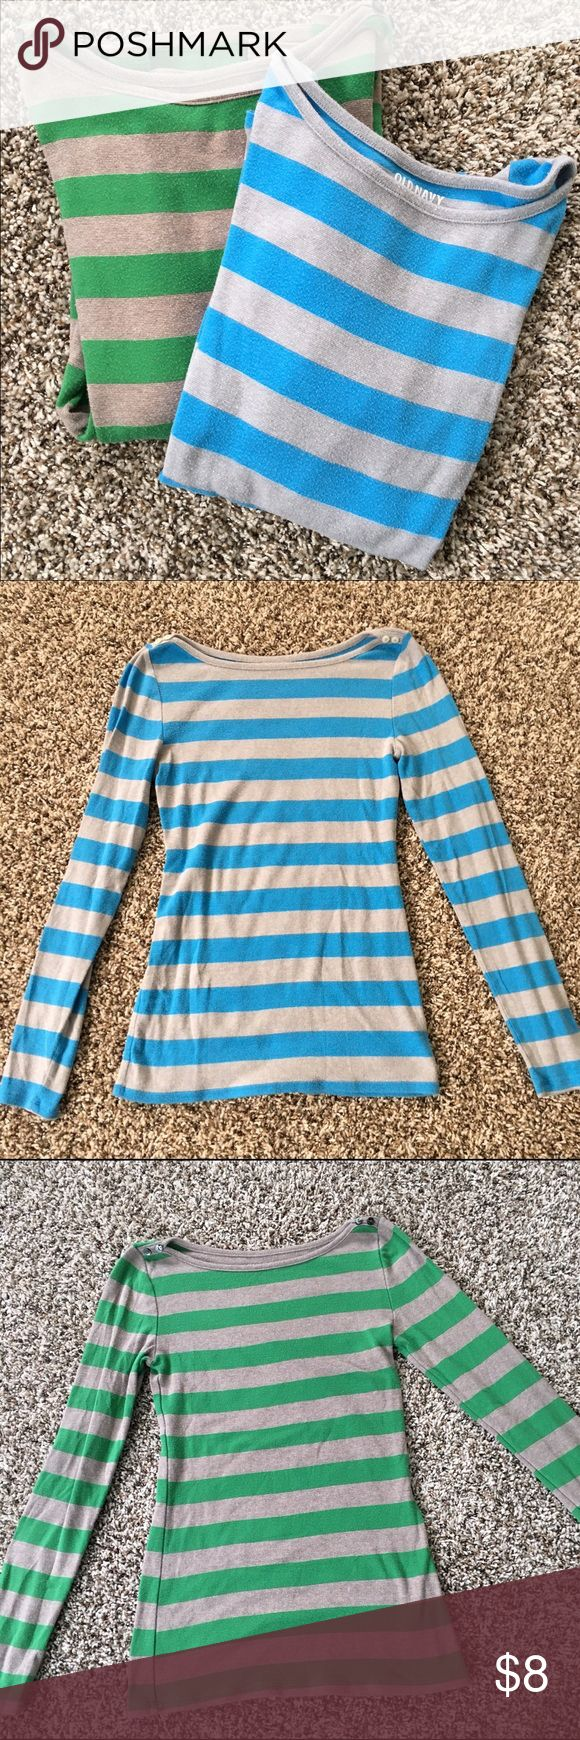 Bundle- Old Navy long sleeve boat neck tops 2 size small long sleeve tops with adorable button detail on neck line. Long and lean with stretch makes these super comfy! Some piling because I loved them so much, but still lots of life left! Old Navy Tops Tees - Long Sleeve